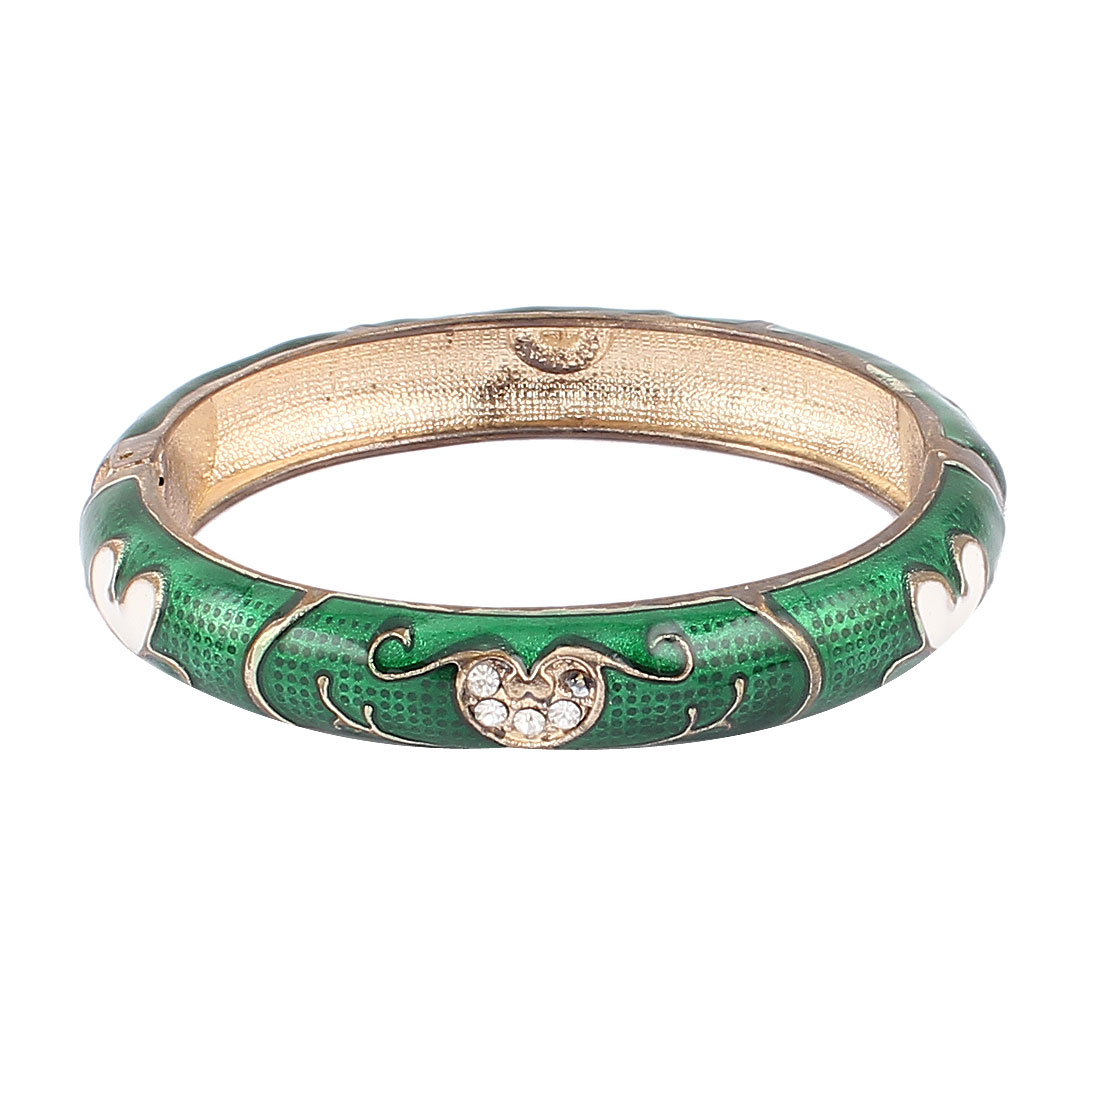 Woman Lady Jewelry Gift Oval Cuff Heart Carved Enamel Bracelet Bangle Dark Green